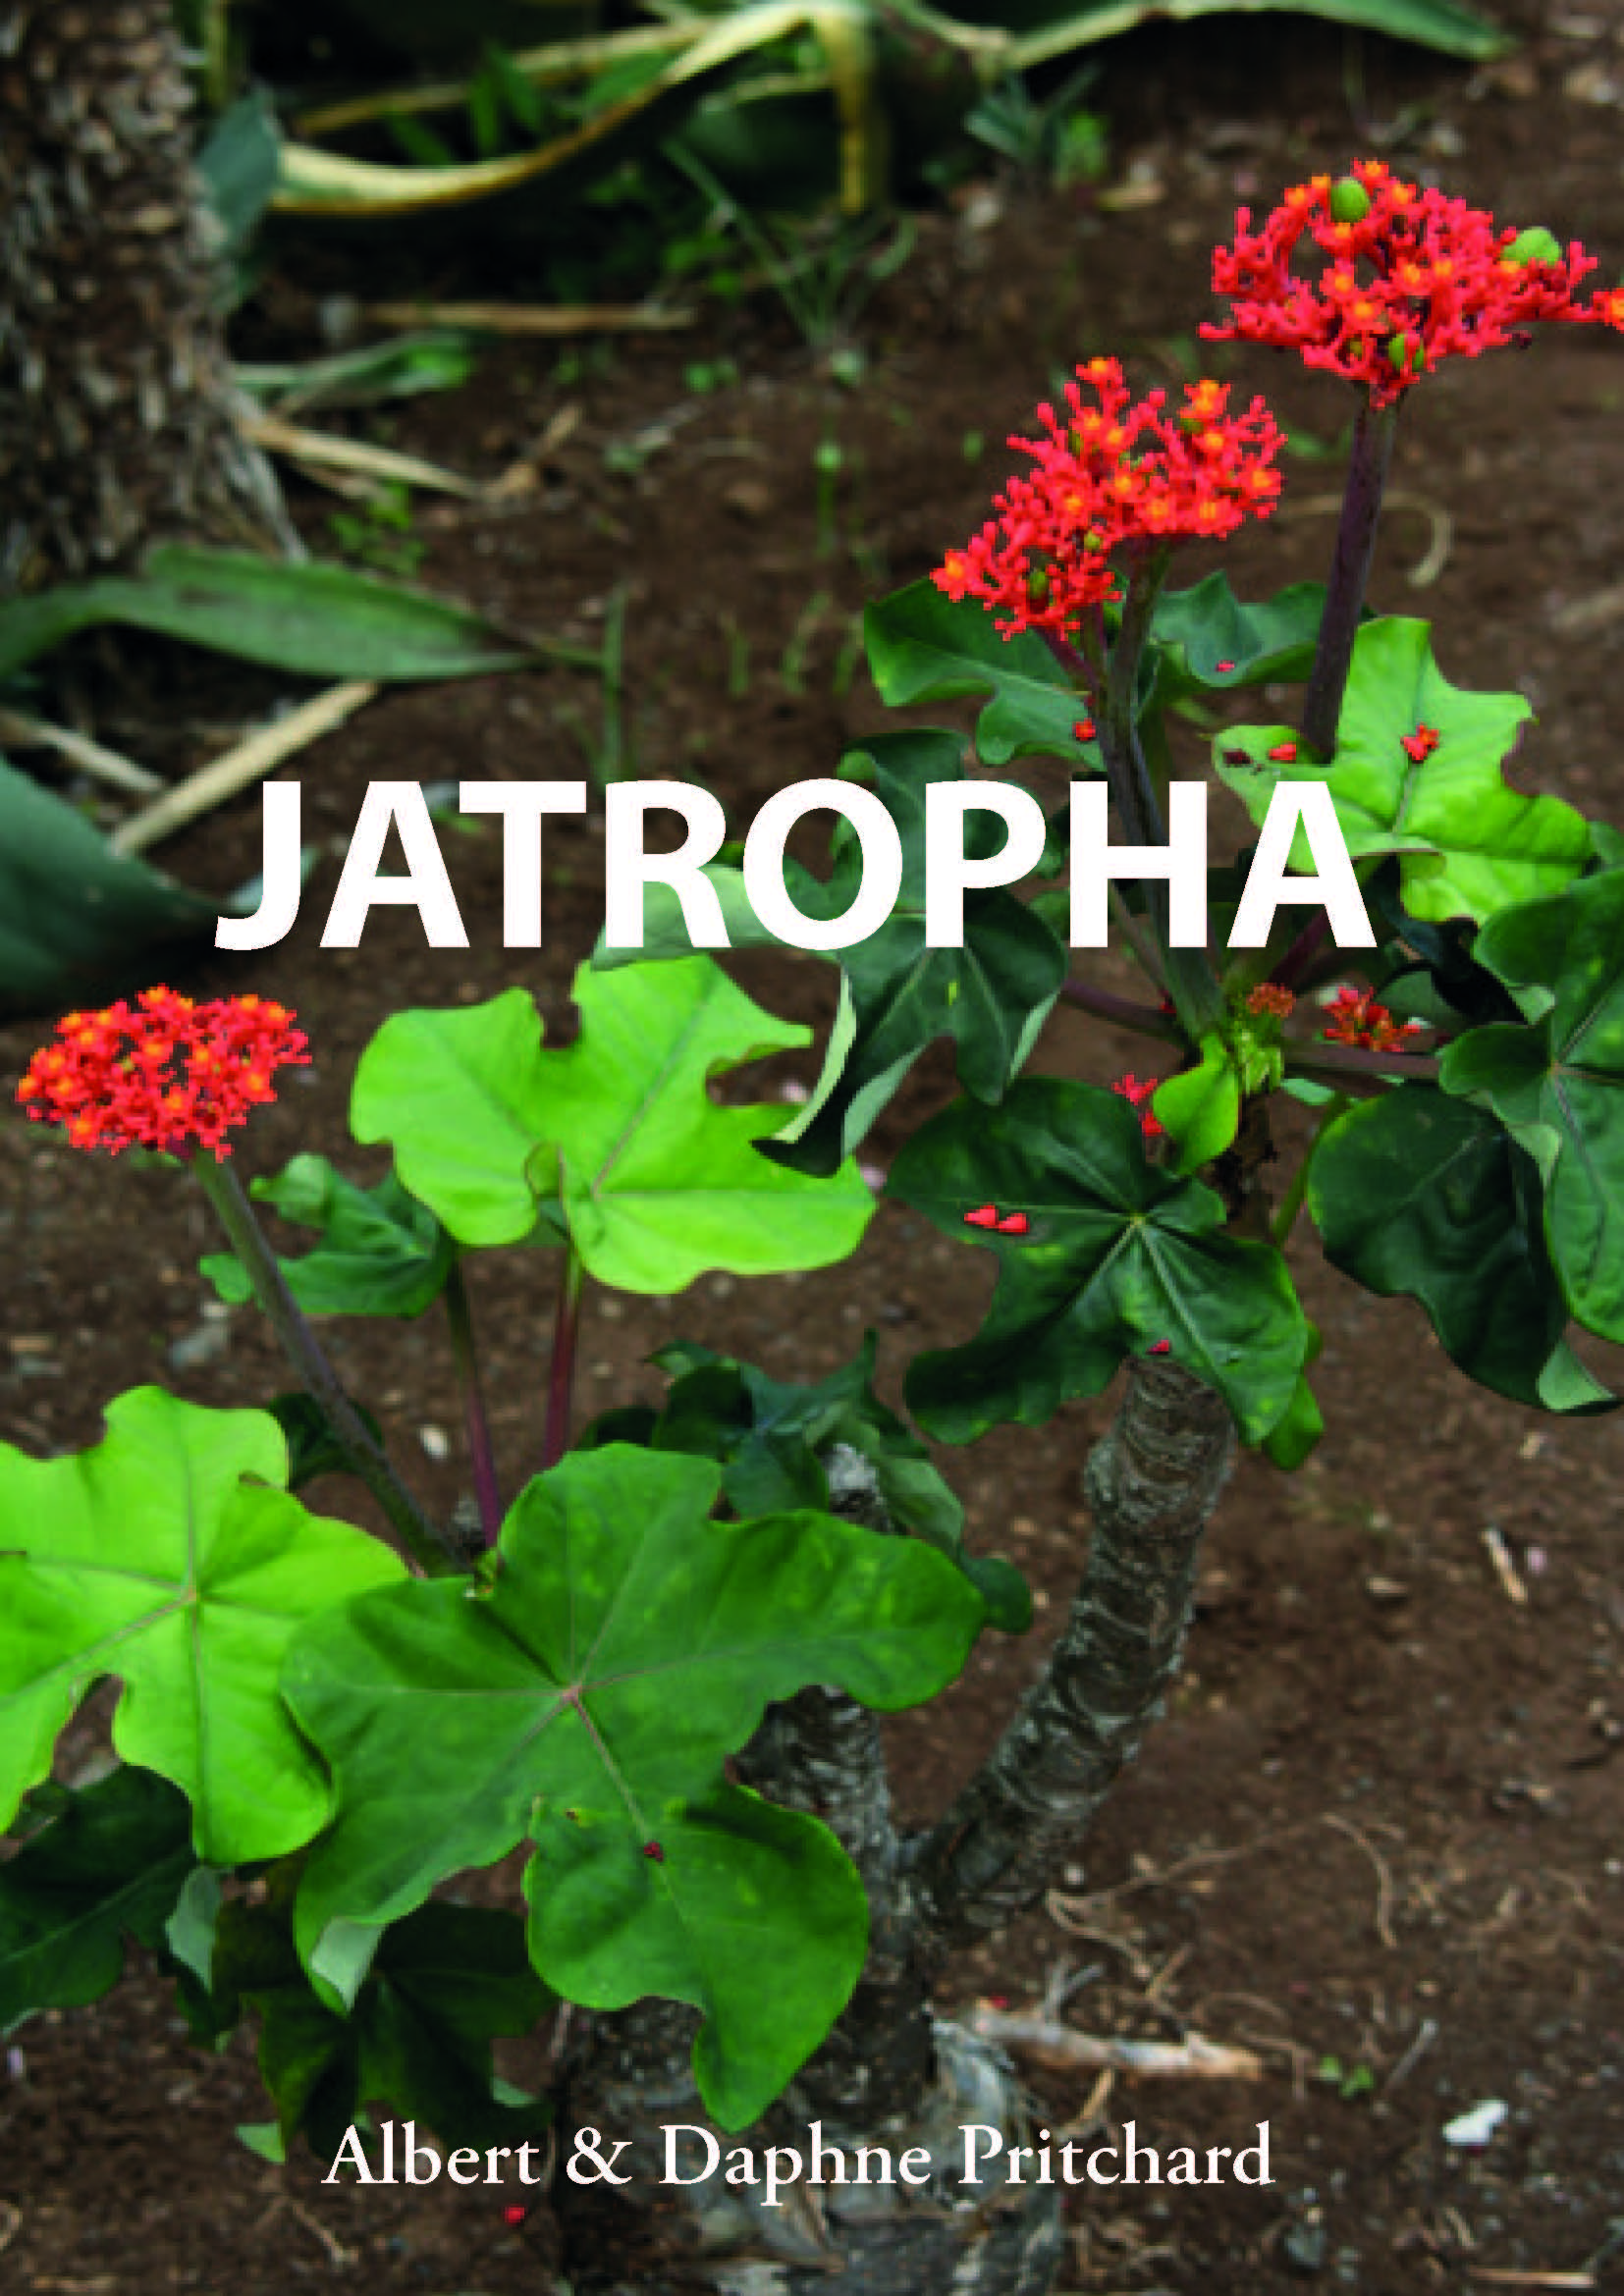 Jatropha Book cover image